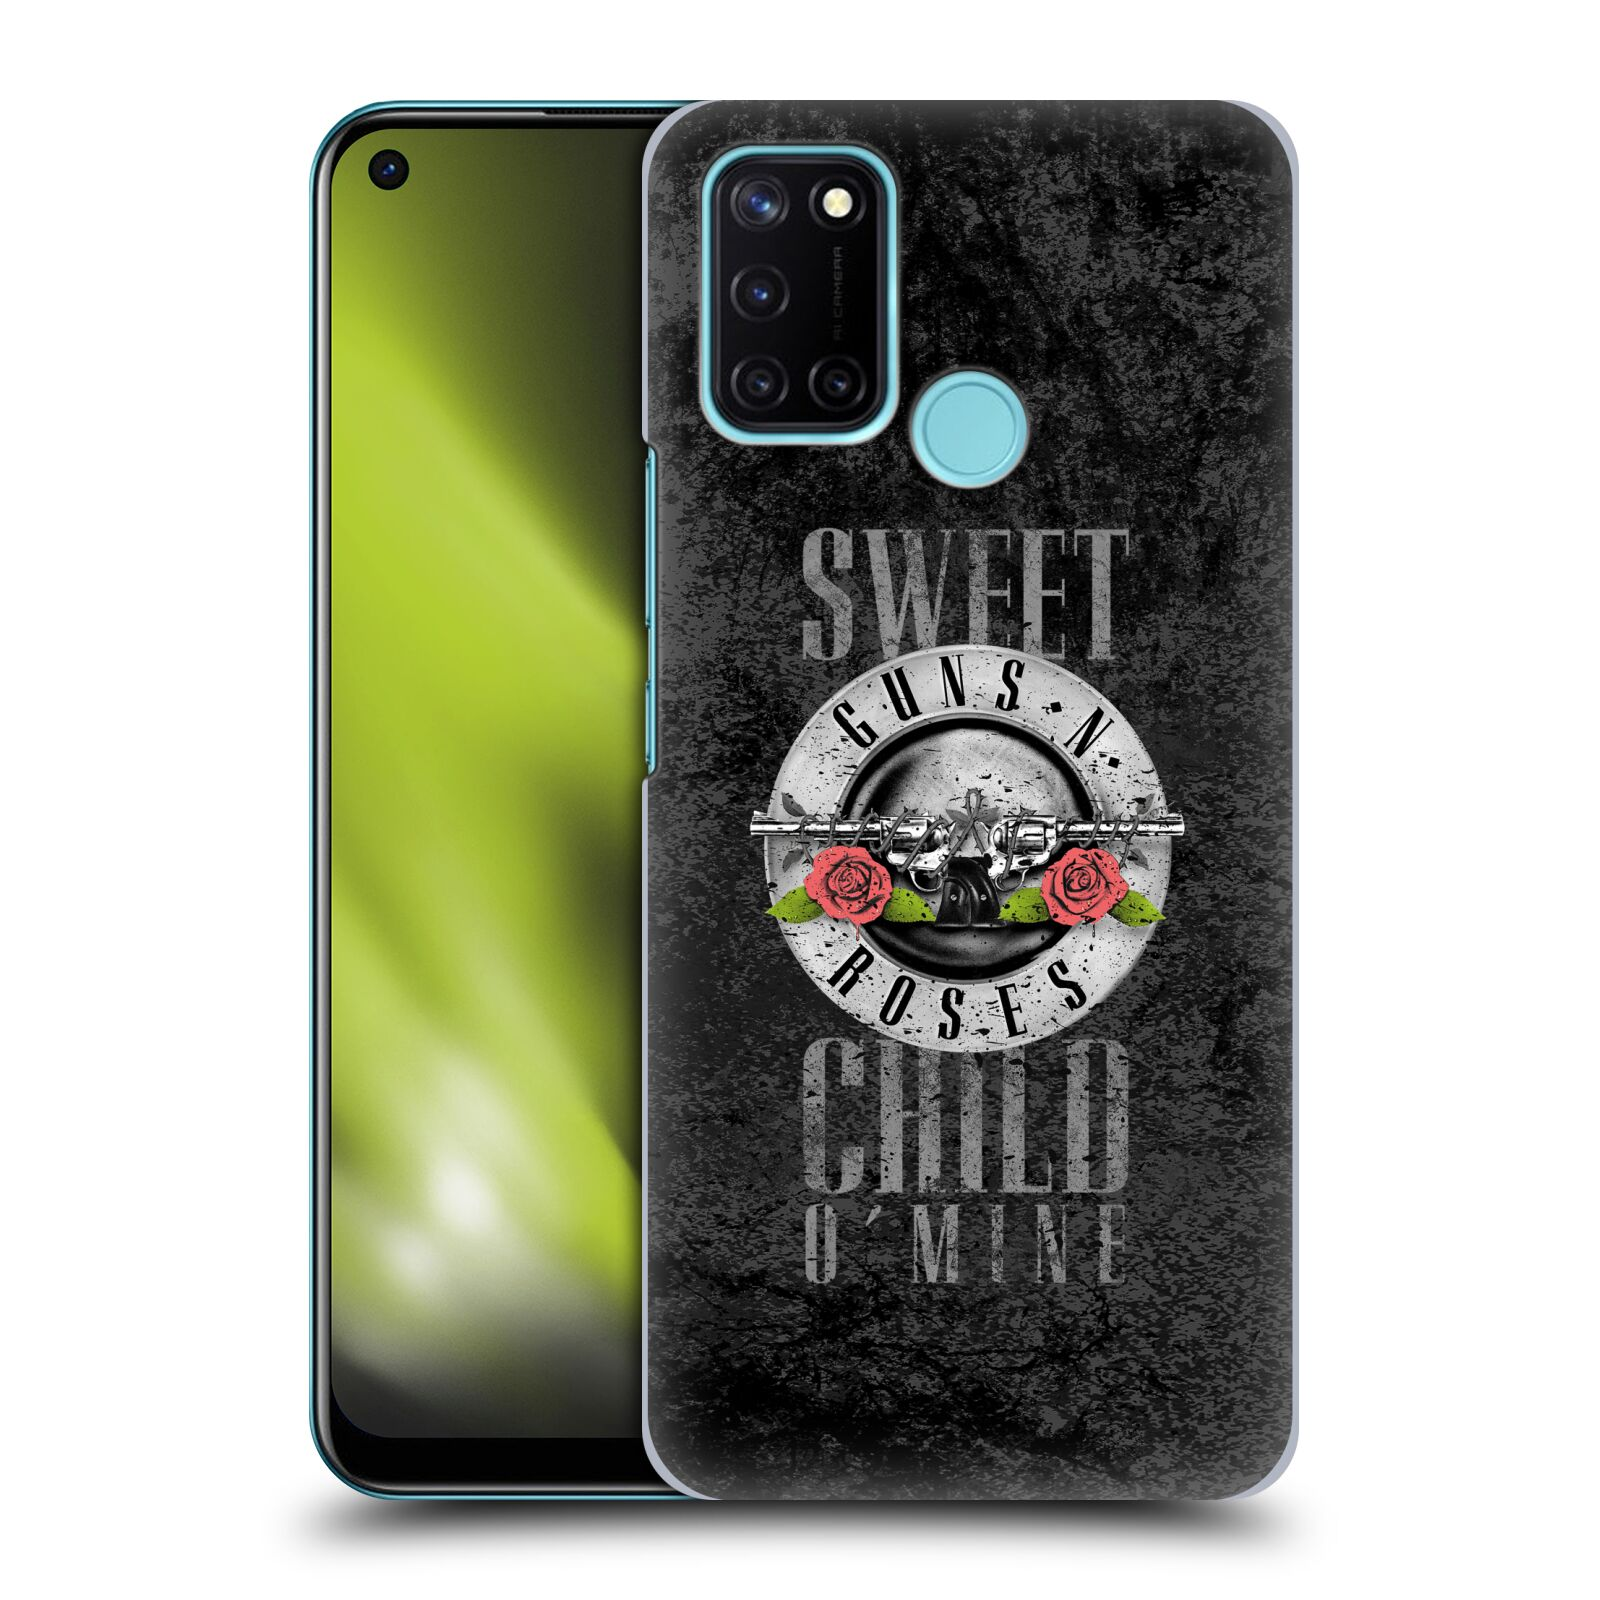 Plastové pouzdro na mobil Realme 7i - Head Case - Guns N' Roses - Sweet Child